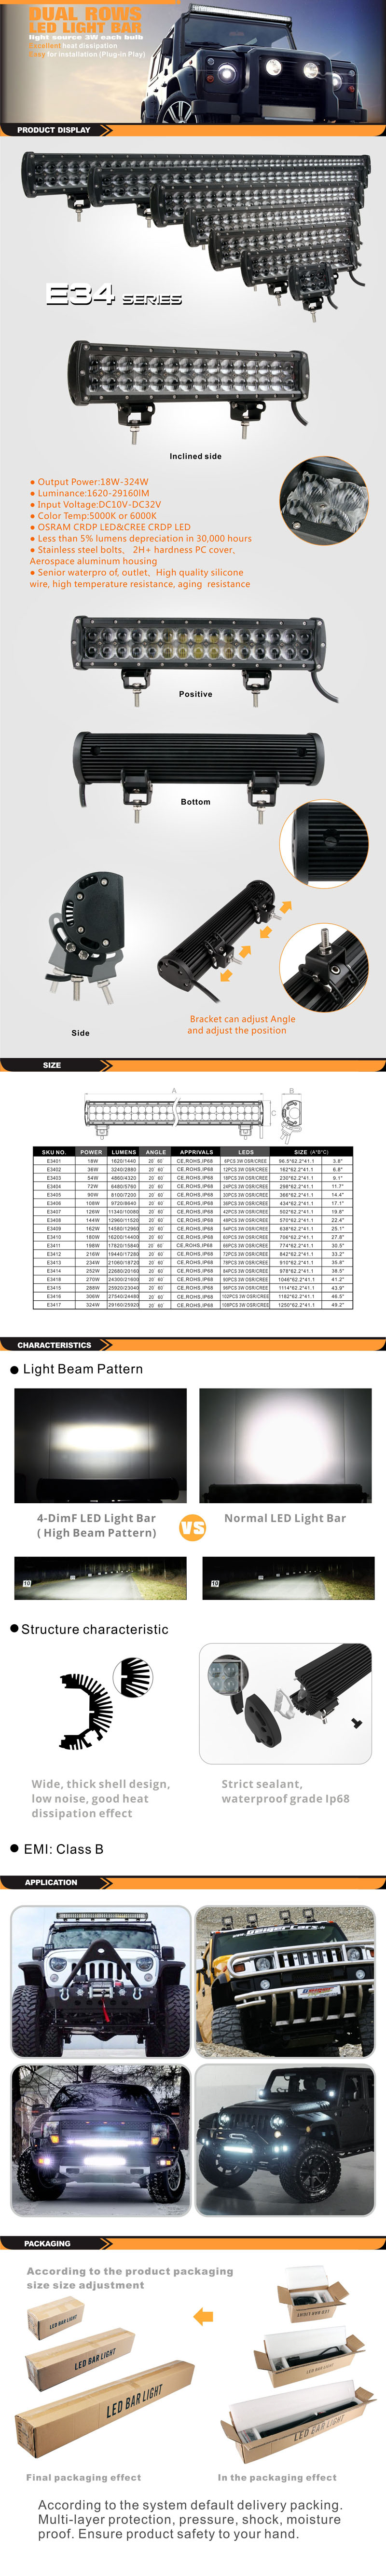 MC-34 4-50 inch Led Light Bar For Vehicles And Trucks &UTV